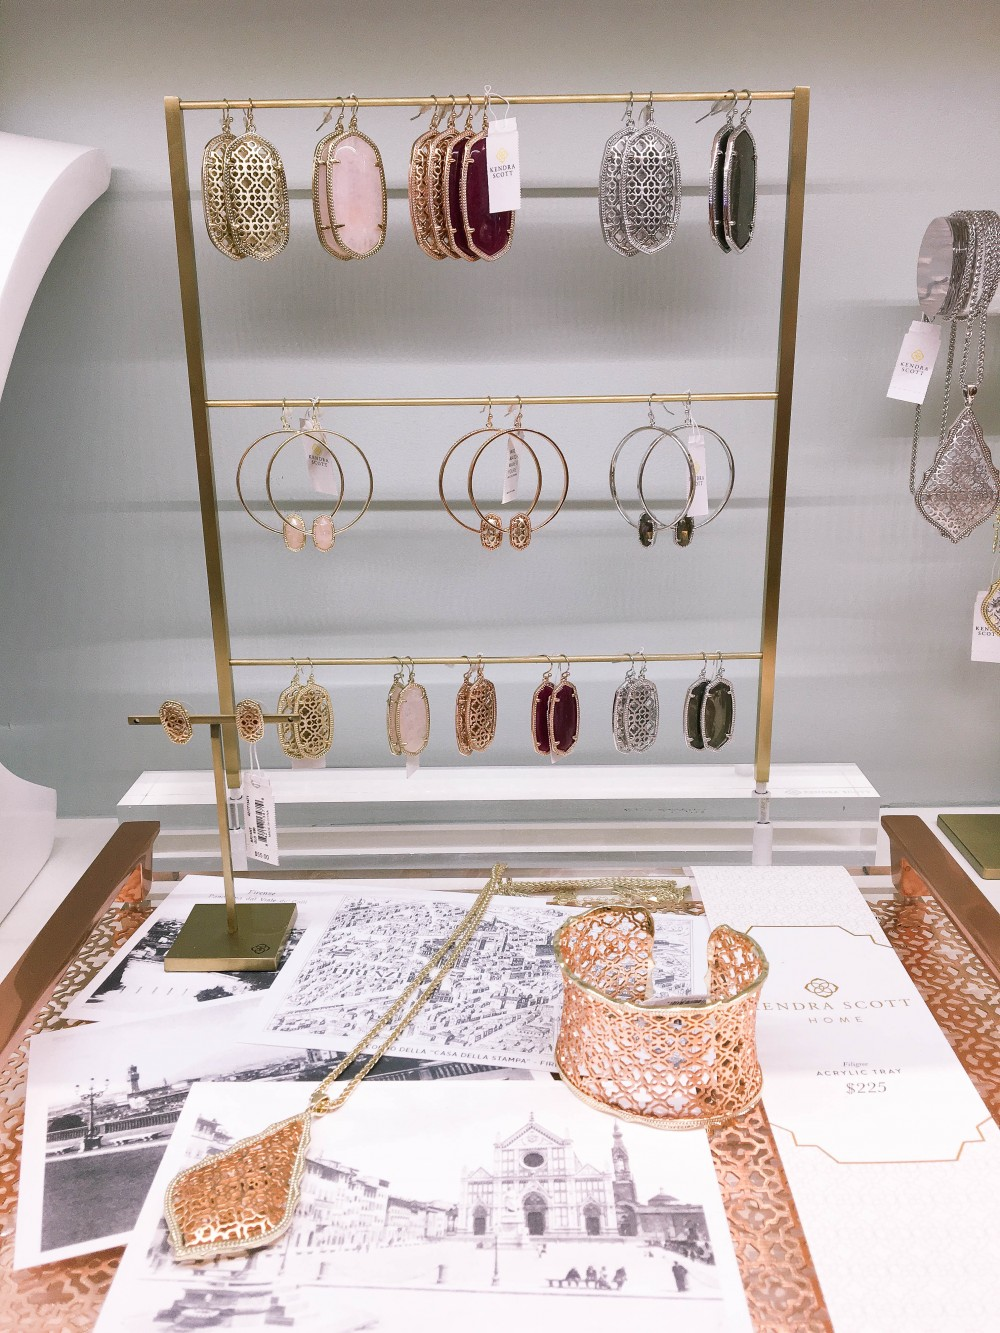 Kendra Scott Fall 2017 Launch Party-Kendra Scott Fall 2017 Collection-Whisk Away to Florence-Inspired by Italy-Bay Area Events-Santana Row-Have Need Want 10